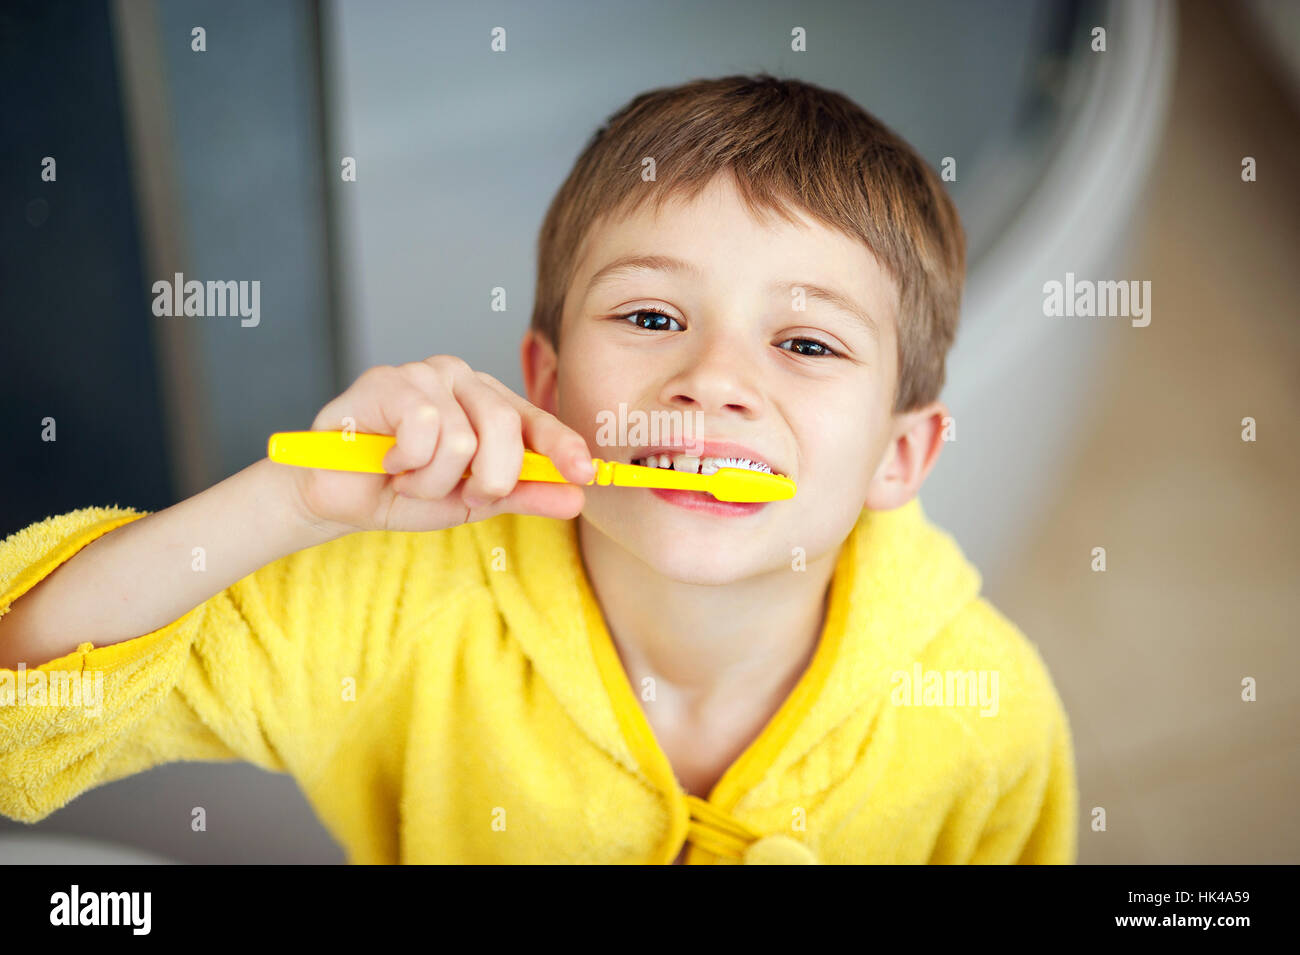 Boy brushing his teeth in bathtub, smiling. healthy lifestyle concept Stock Photo